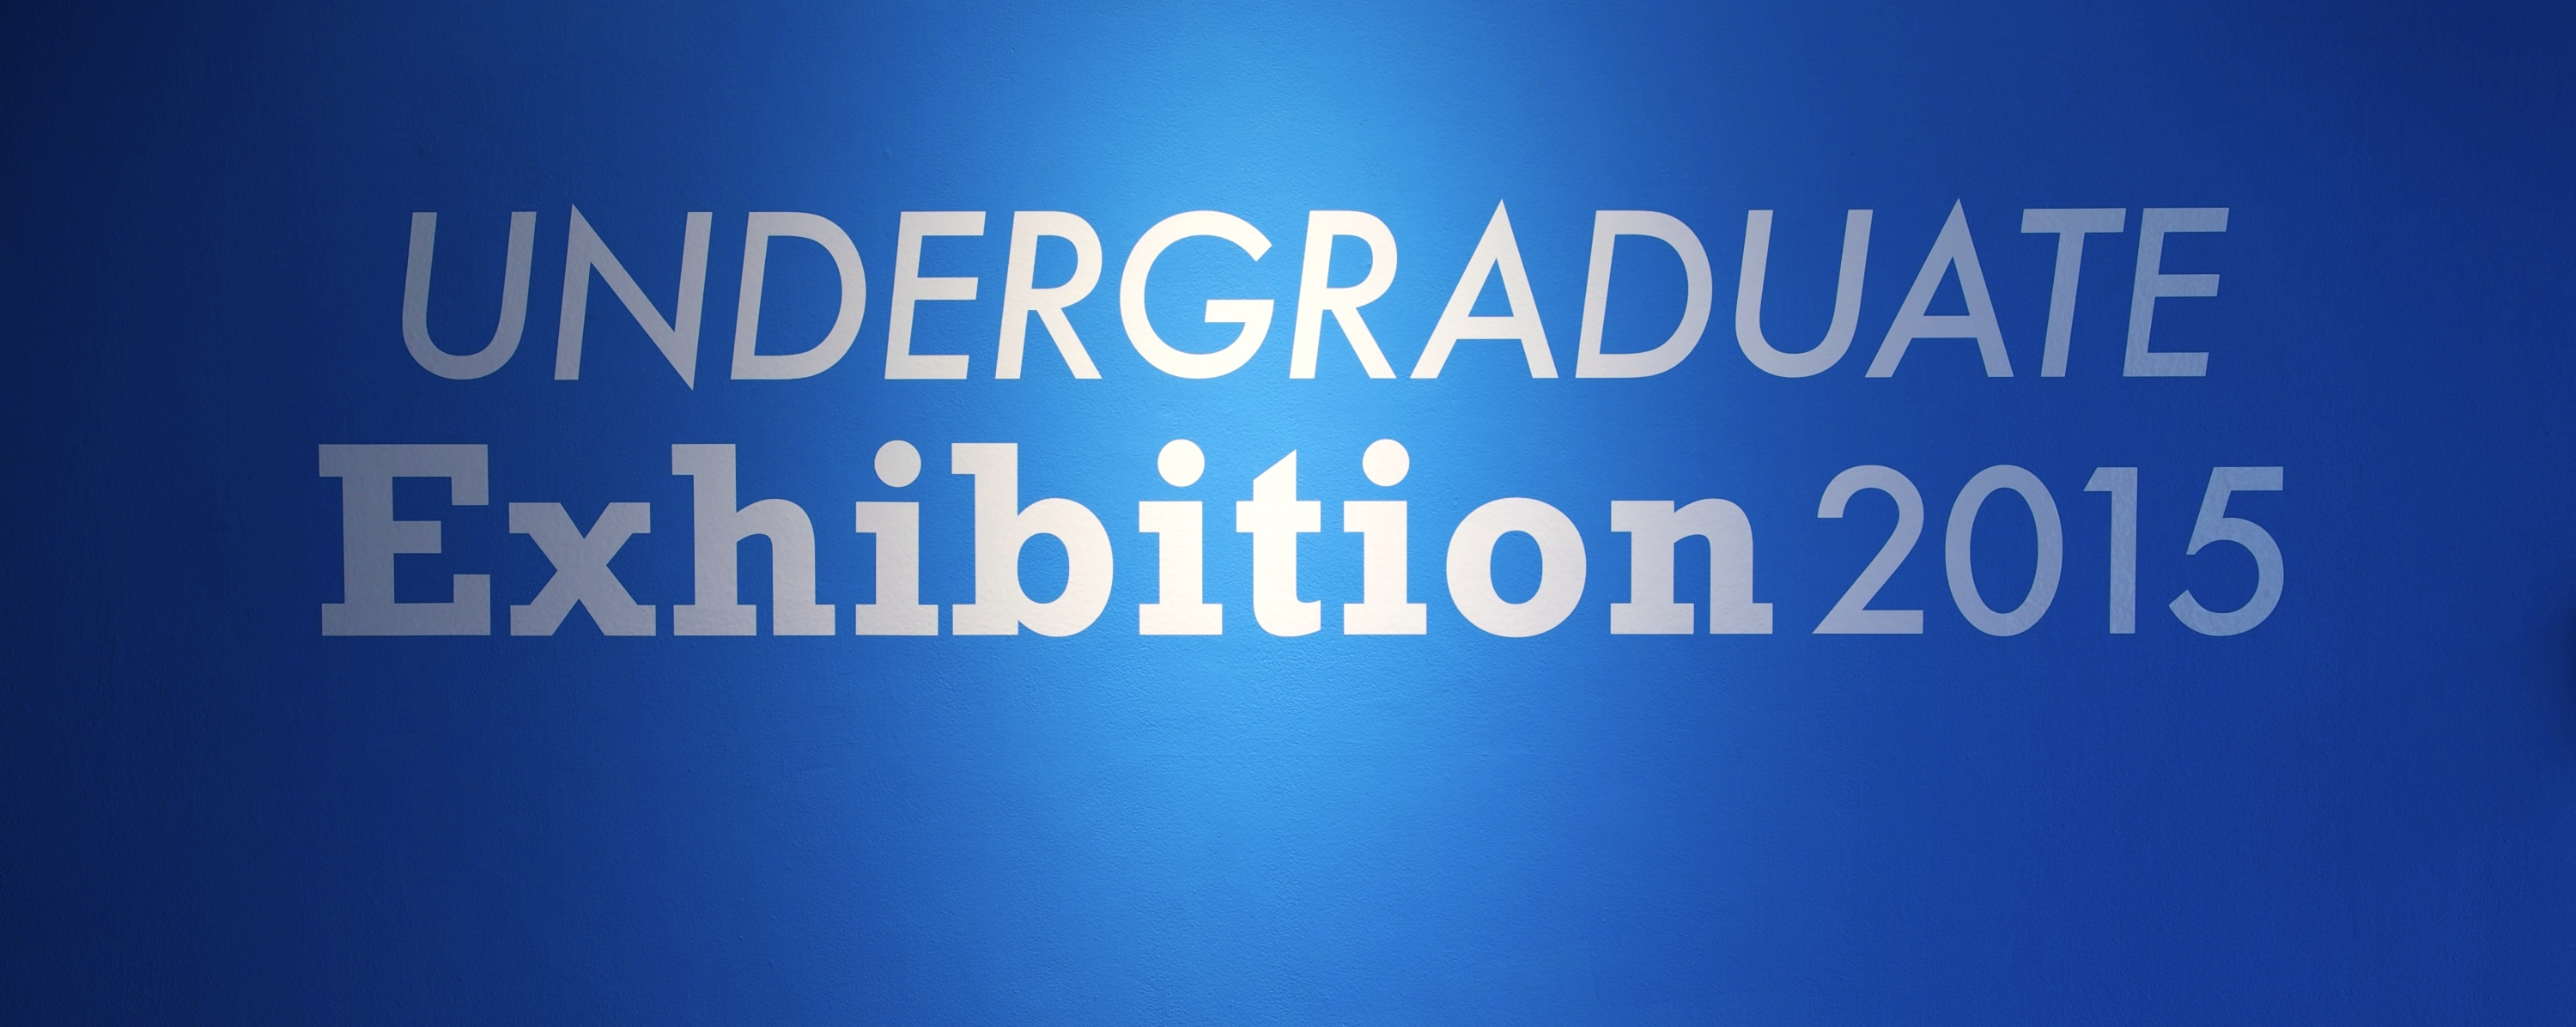 Undergraduate Exhibition 6